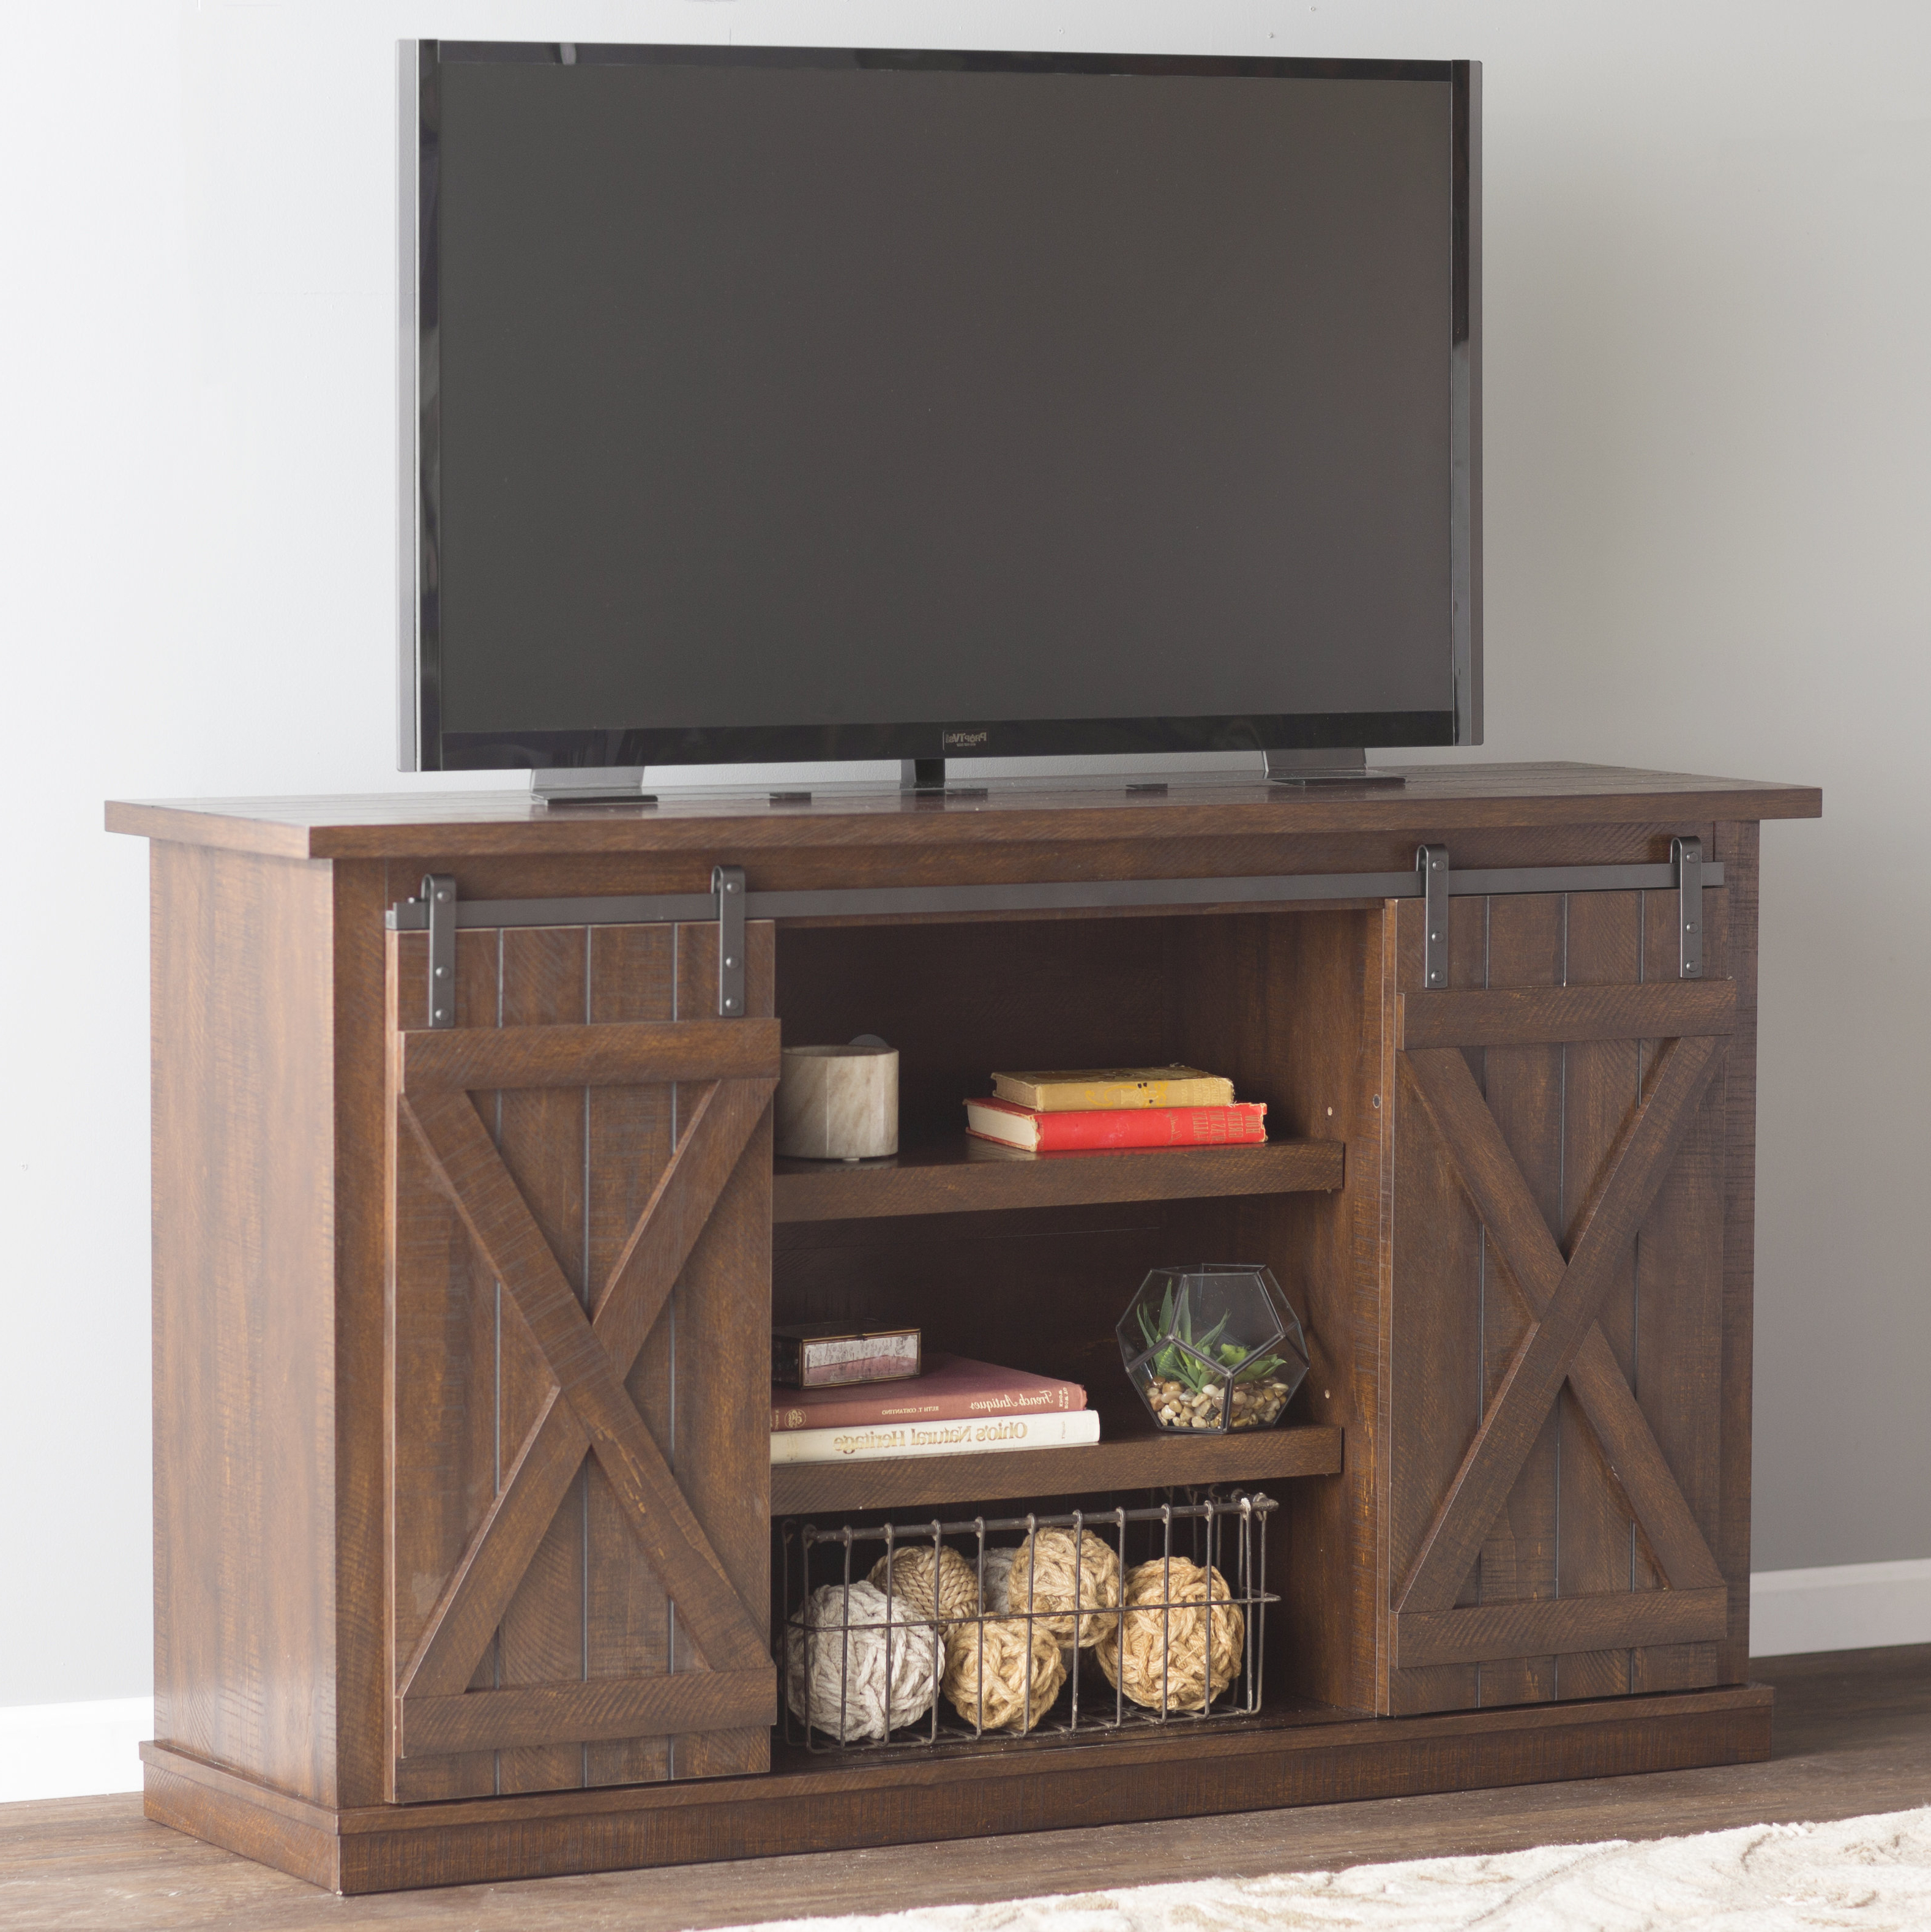 72 Inch Tv Stand | Wayfair For Laurent 60 Inch Tv Stands (View 3 of 20)